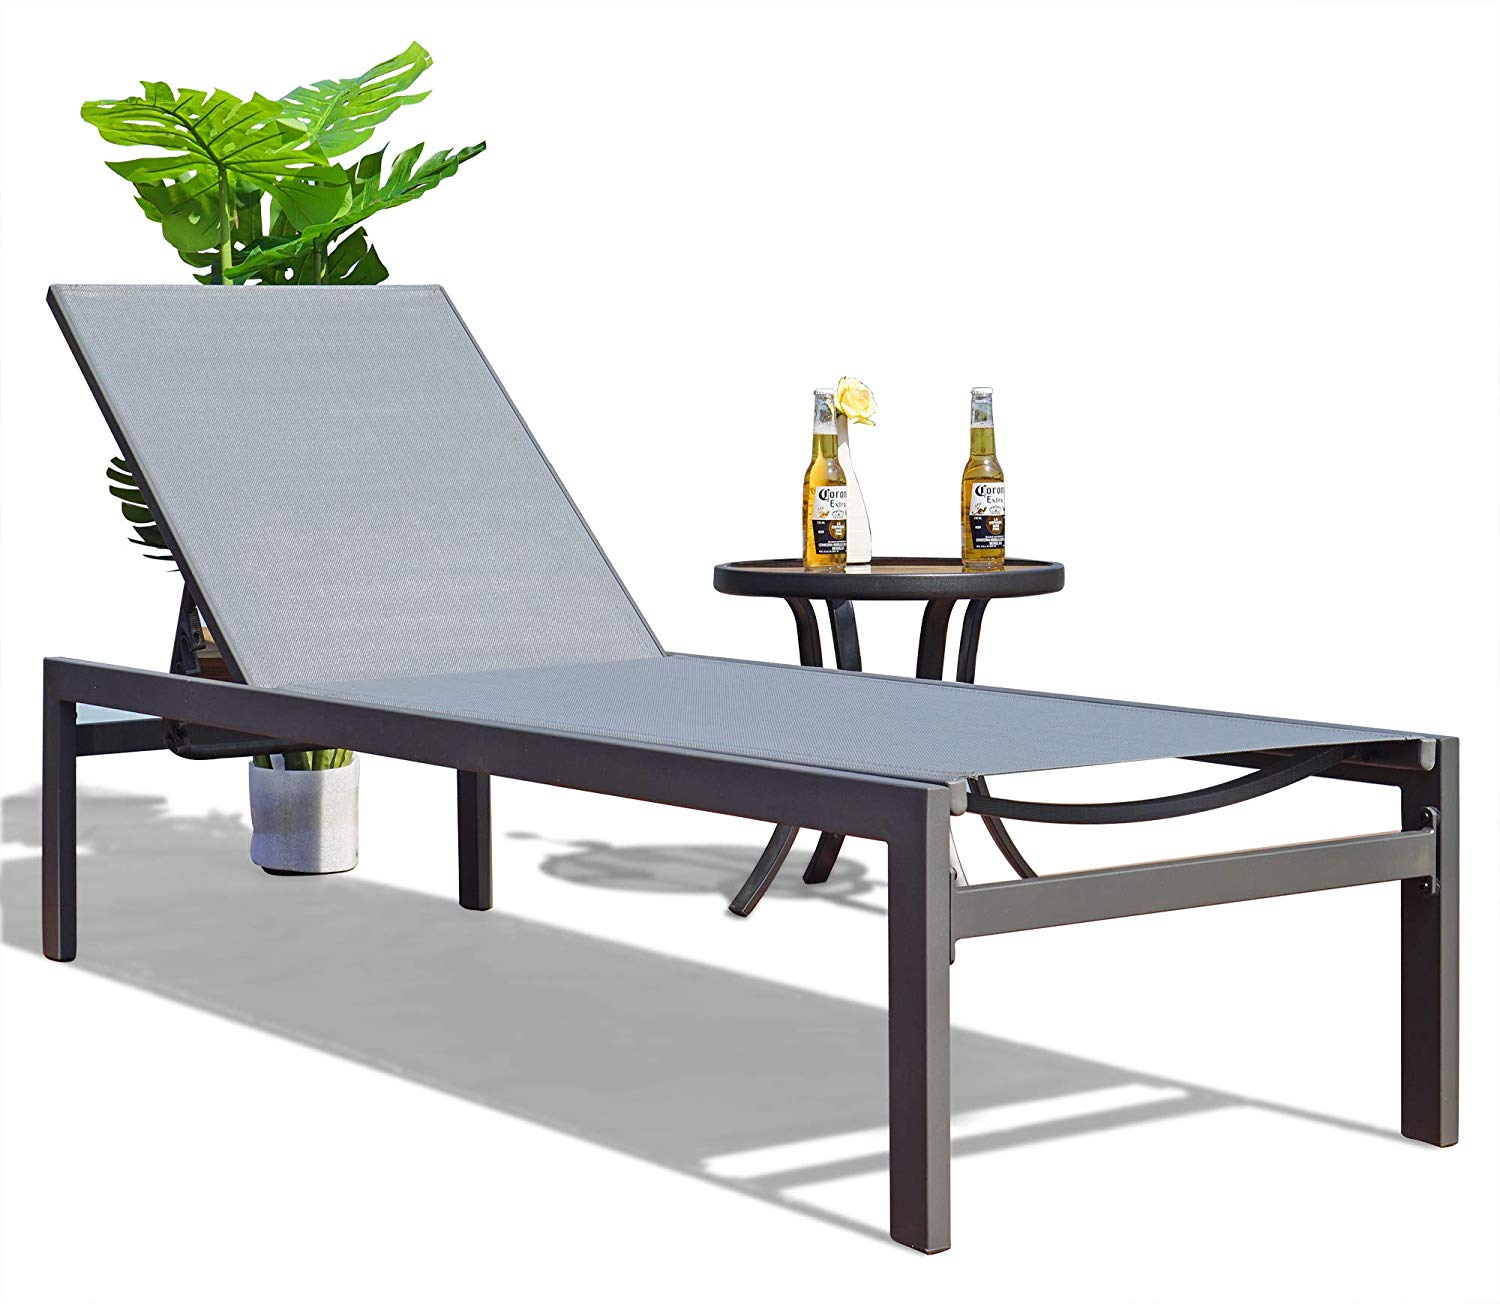 Kozyard Modern Full Flat Aluminum Patio Reclining Adjustable Chaise Lounge